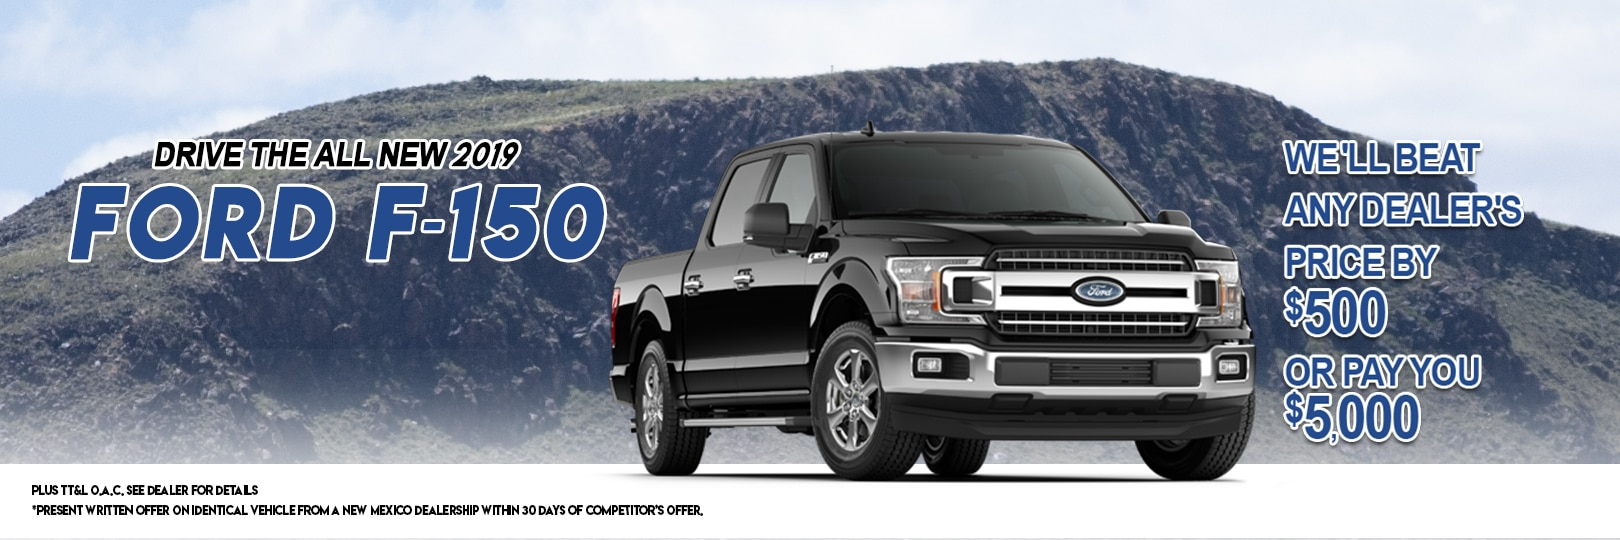 Ford Dealership Albuquerque >> Melloy Ford Ford Dealership In Los Lunas Nm